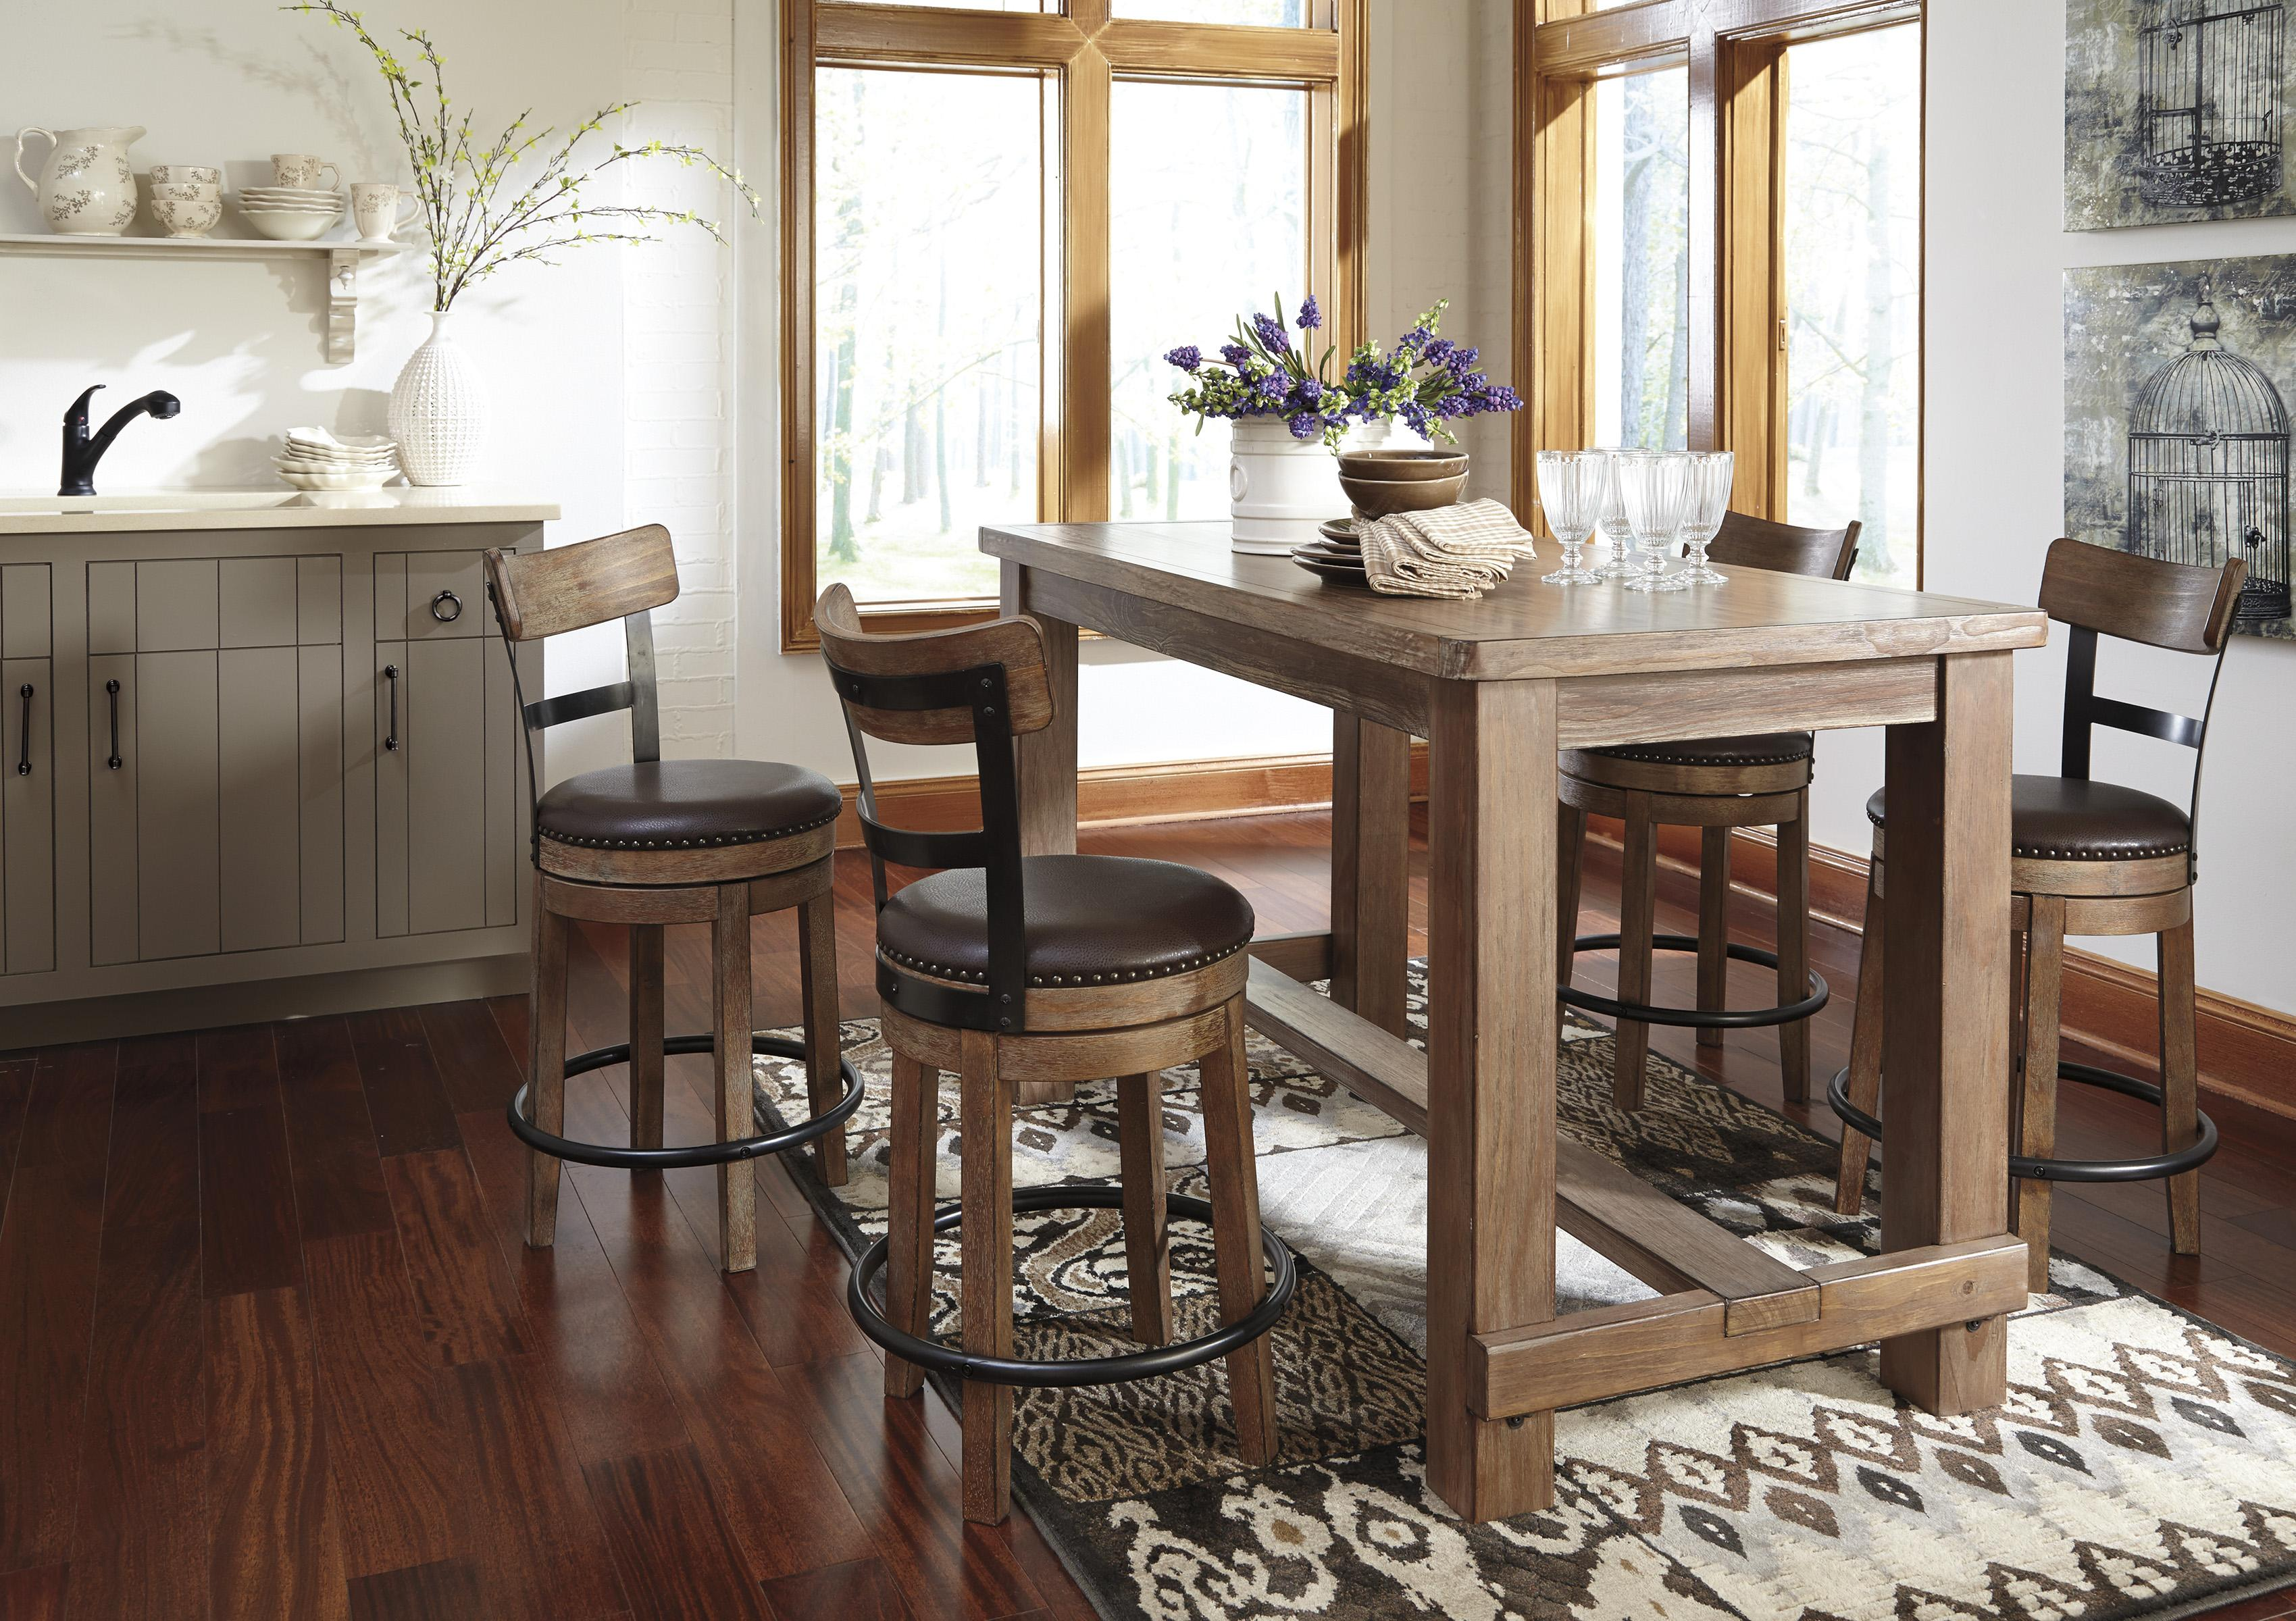 bar height kitchen table Signature Design by Ashley Pinnadel Rectangular Pine Veneer Dining Room Bar Table in Wire Brushed Gray Brown Finish Rotmans Pub Tables Worcester